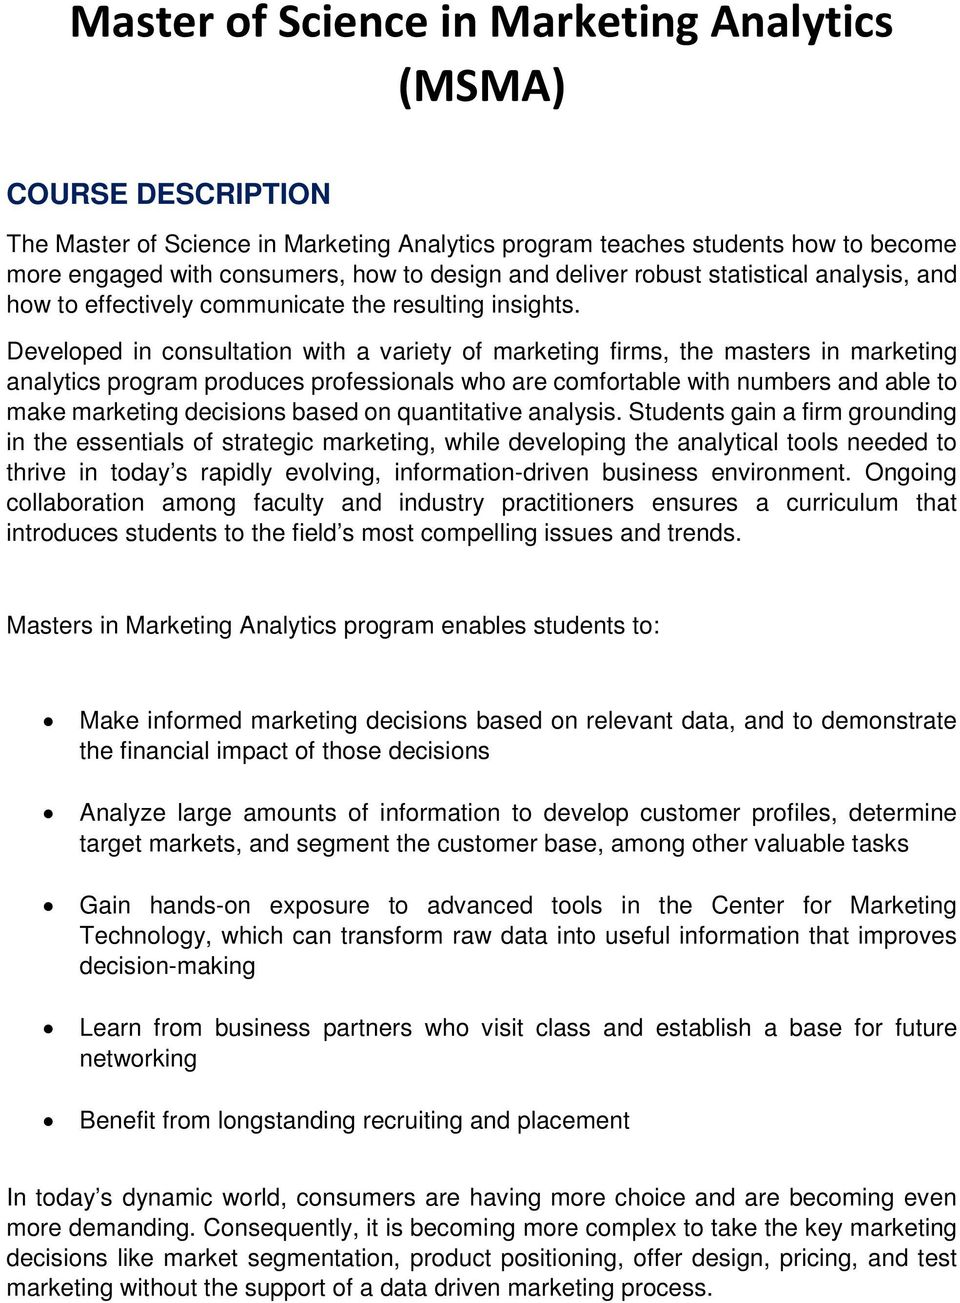 Developed in consultation with a variety of marketing firms, the masters in marketing analytics program produces professionals who are comfortable with numbers and able to make marketing decisions